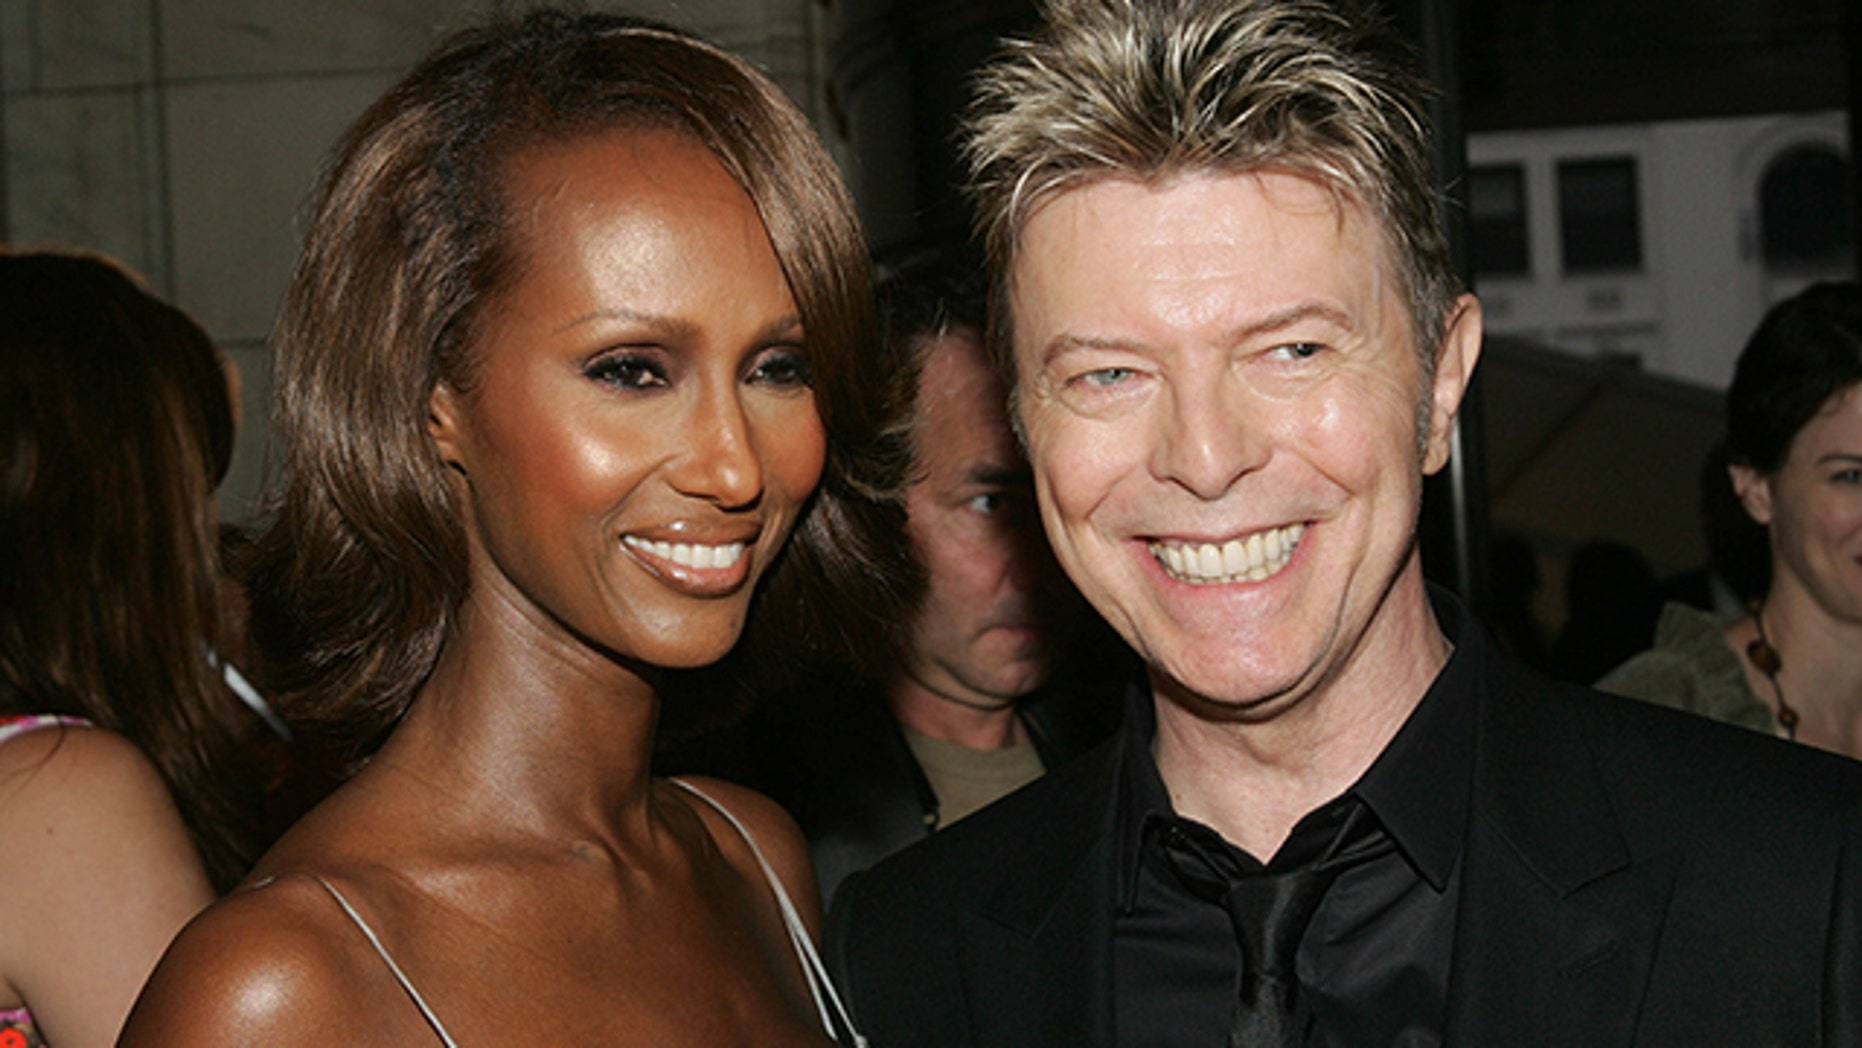 Model Iman says she refuses to marry after the death of her husband David Bowie.